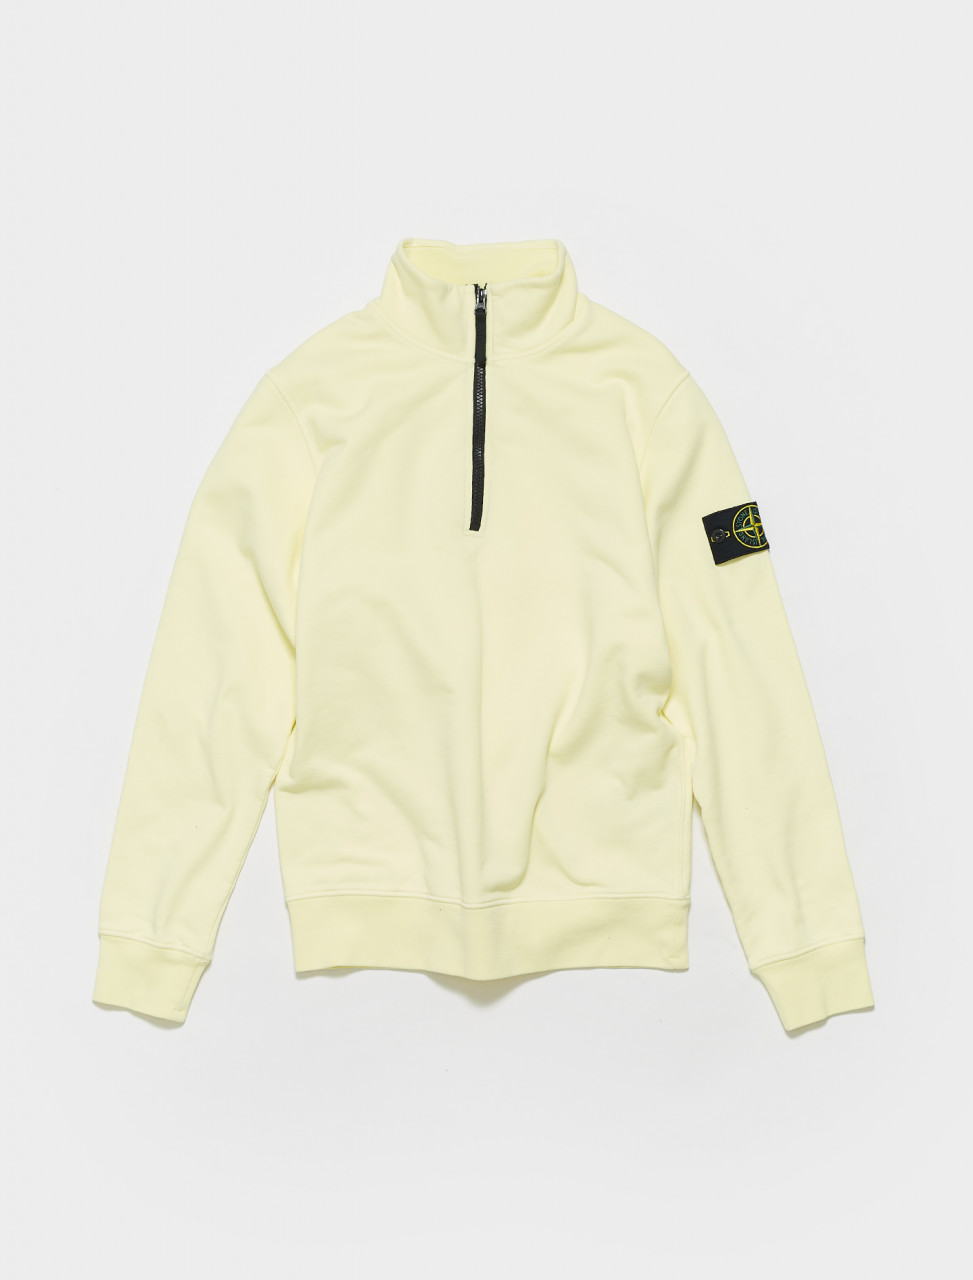 MO741561951-V0031 STONE ISLAND ZIP UP SWEATER IN LIGHT YELLOW